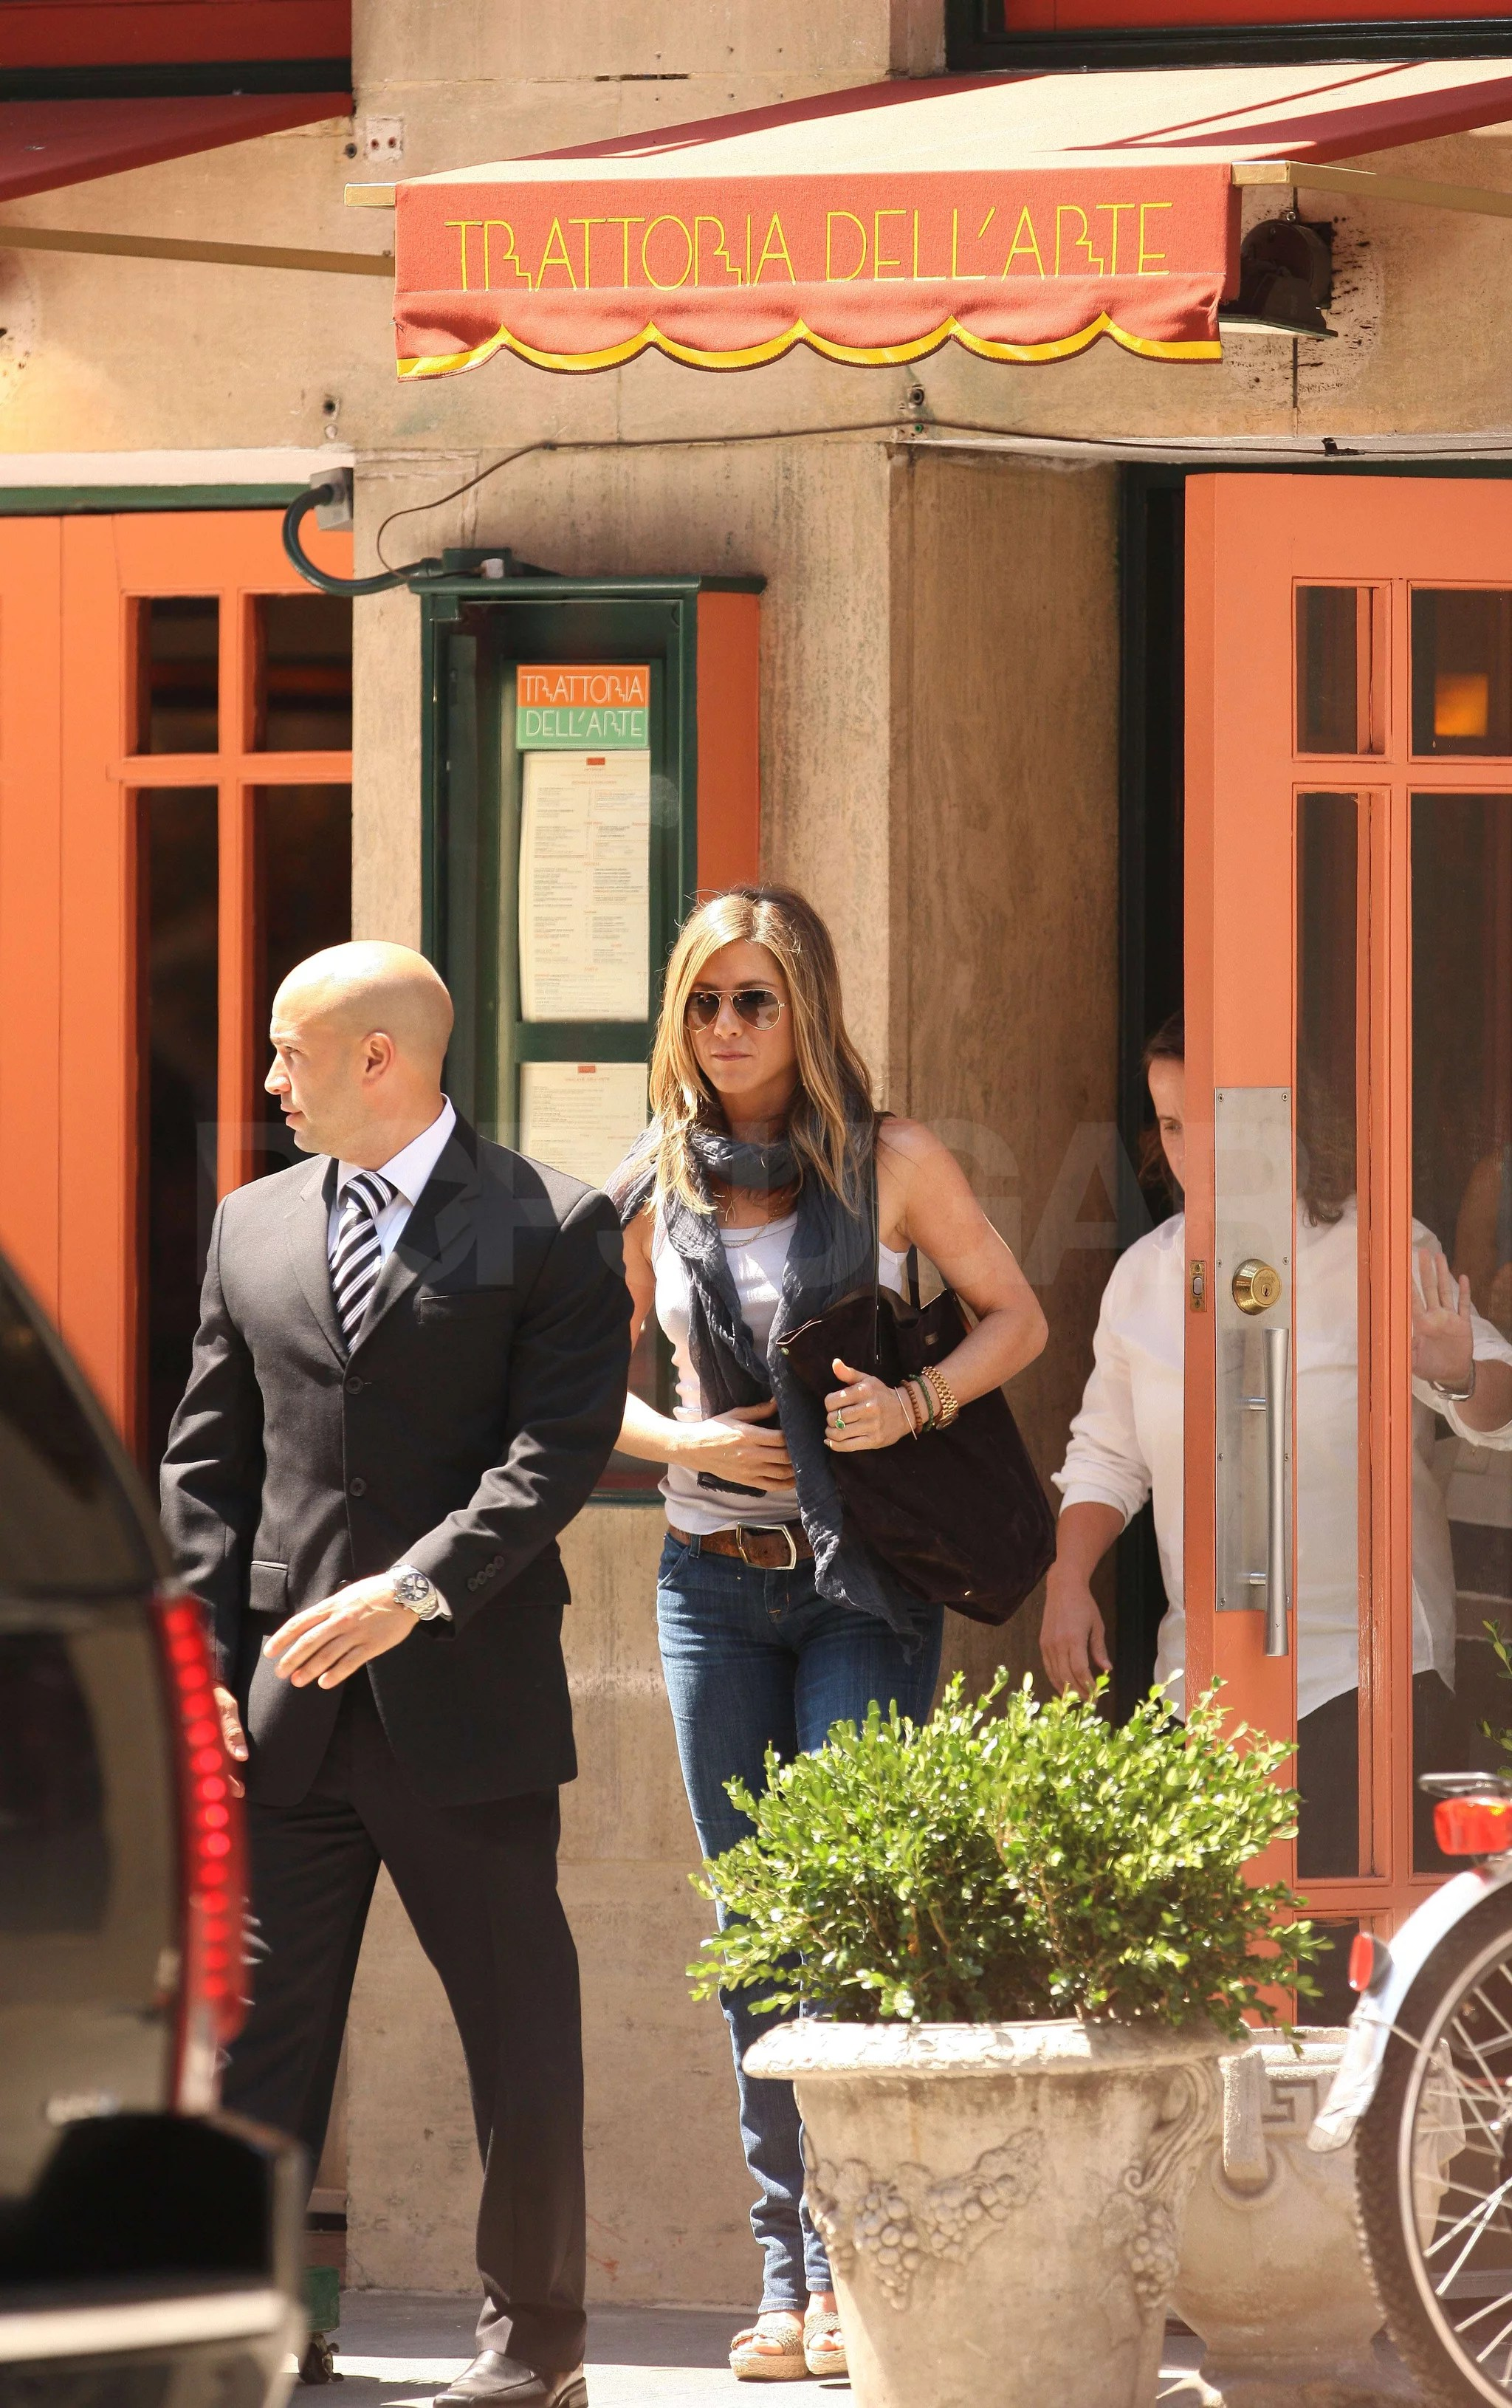 Trattoria Dell'arte Nyc Menu Pictures Of Jennifer Aniston Leaving Trattoria Dell 39arte